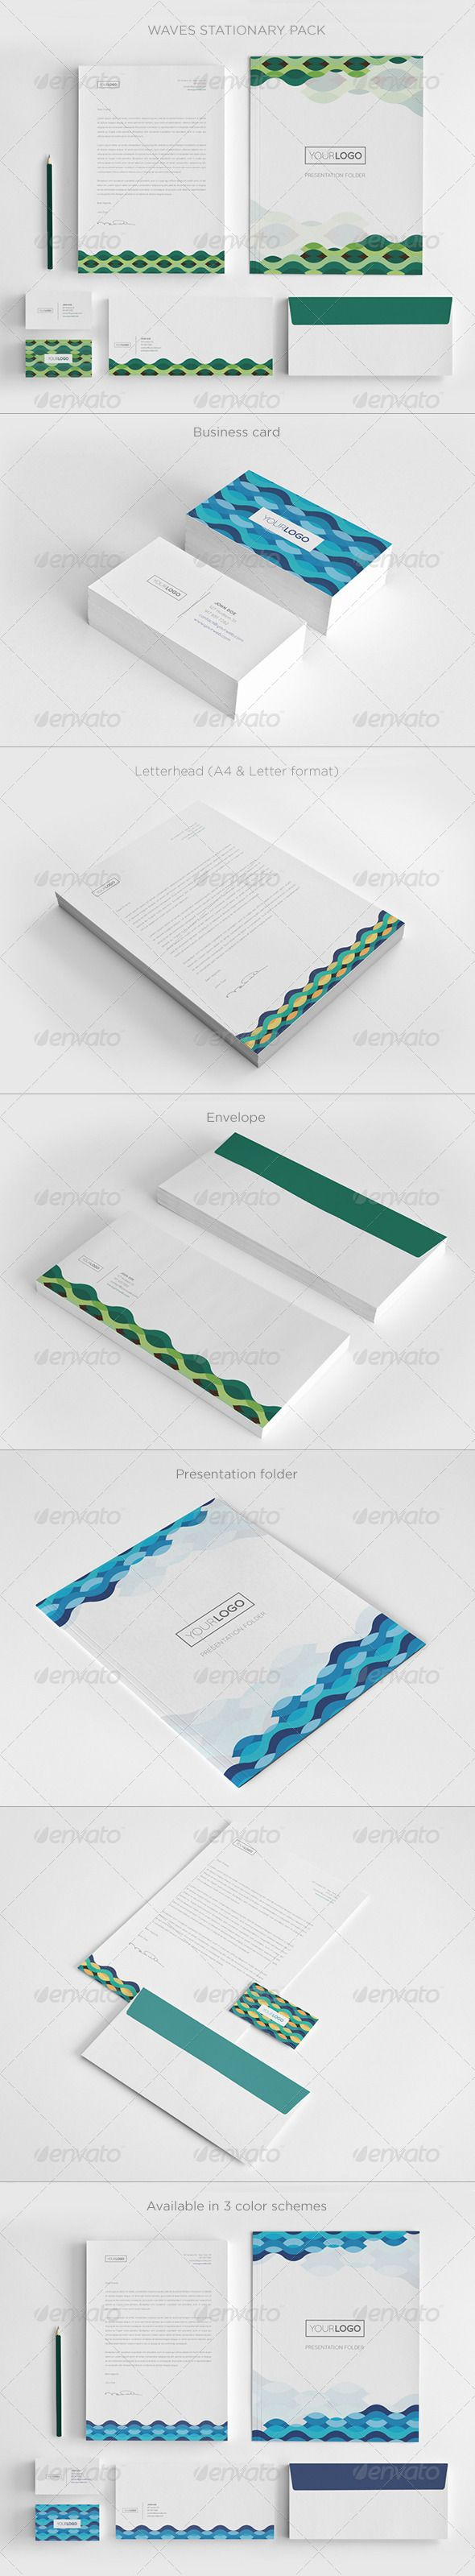 Waves Stationary Pack  Presentation Folder Print Templates And